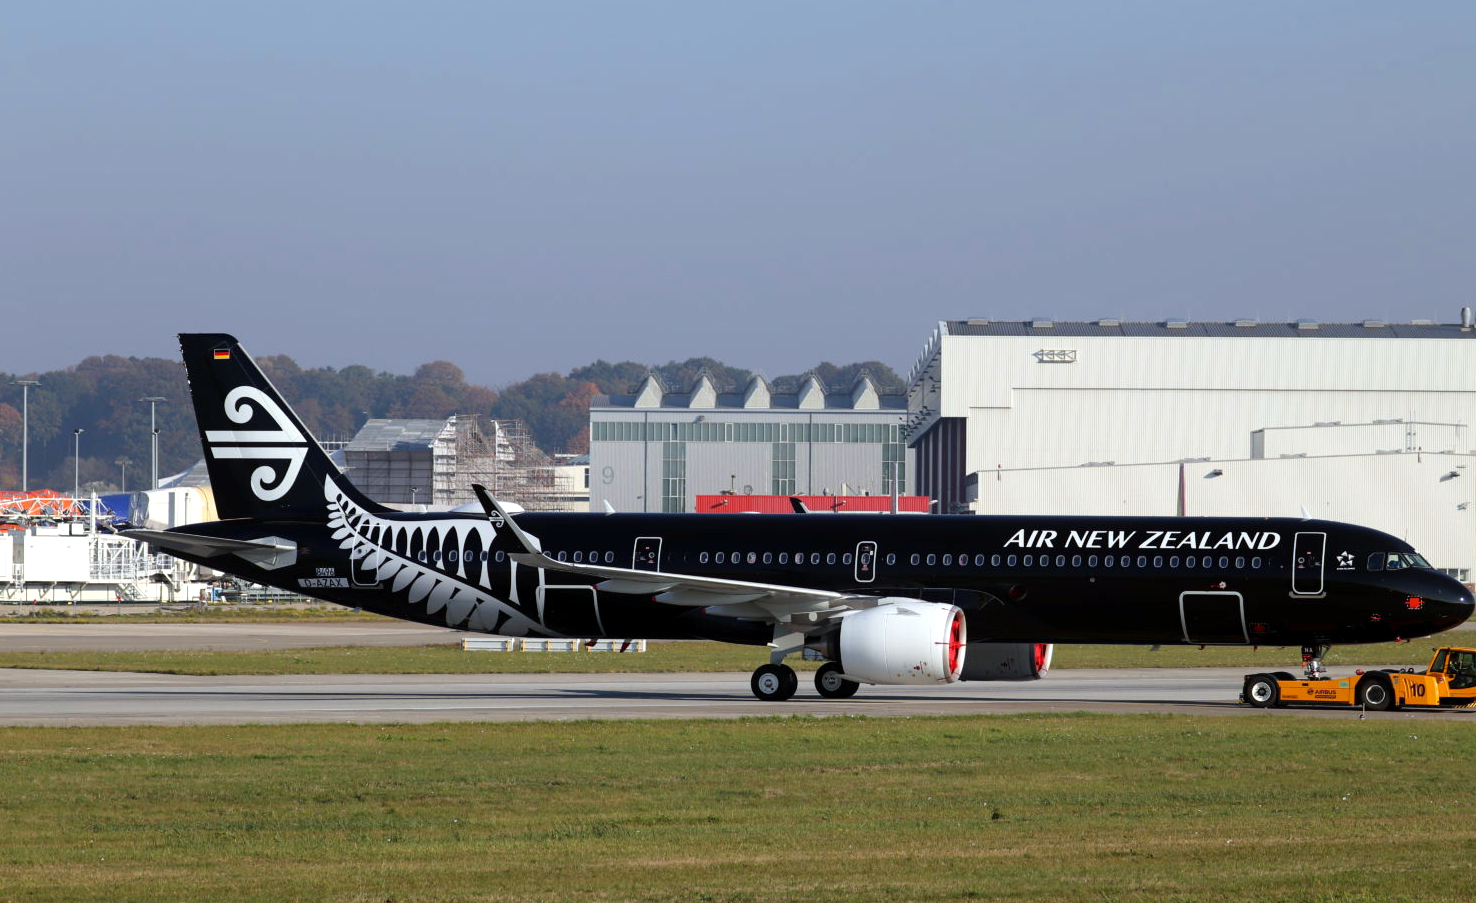 Air New Zealand Airbus A321neo Dec 2018 Delivery